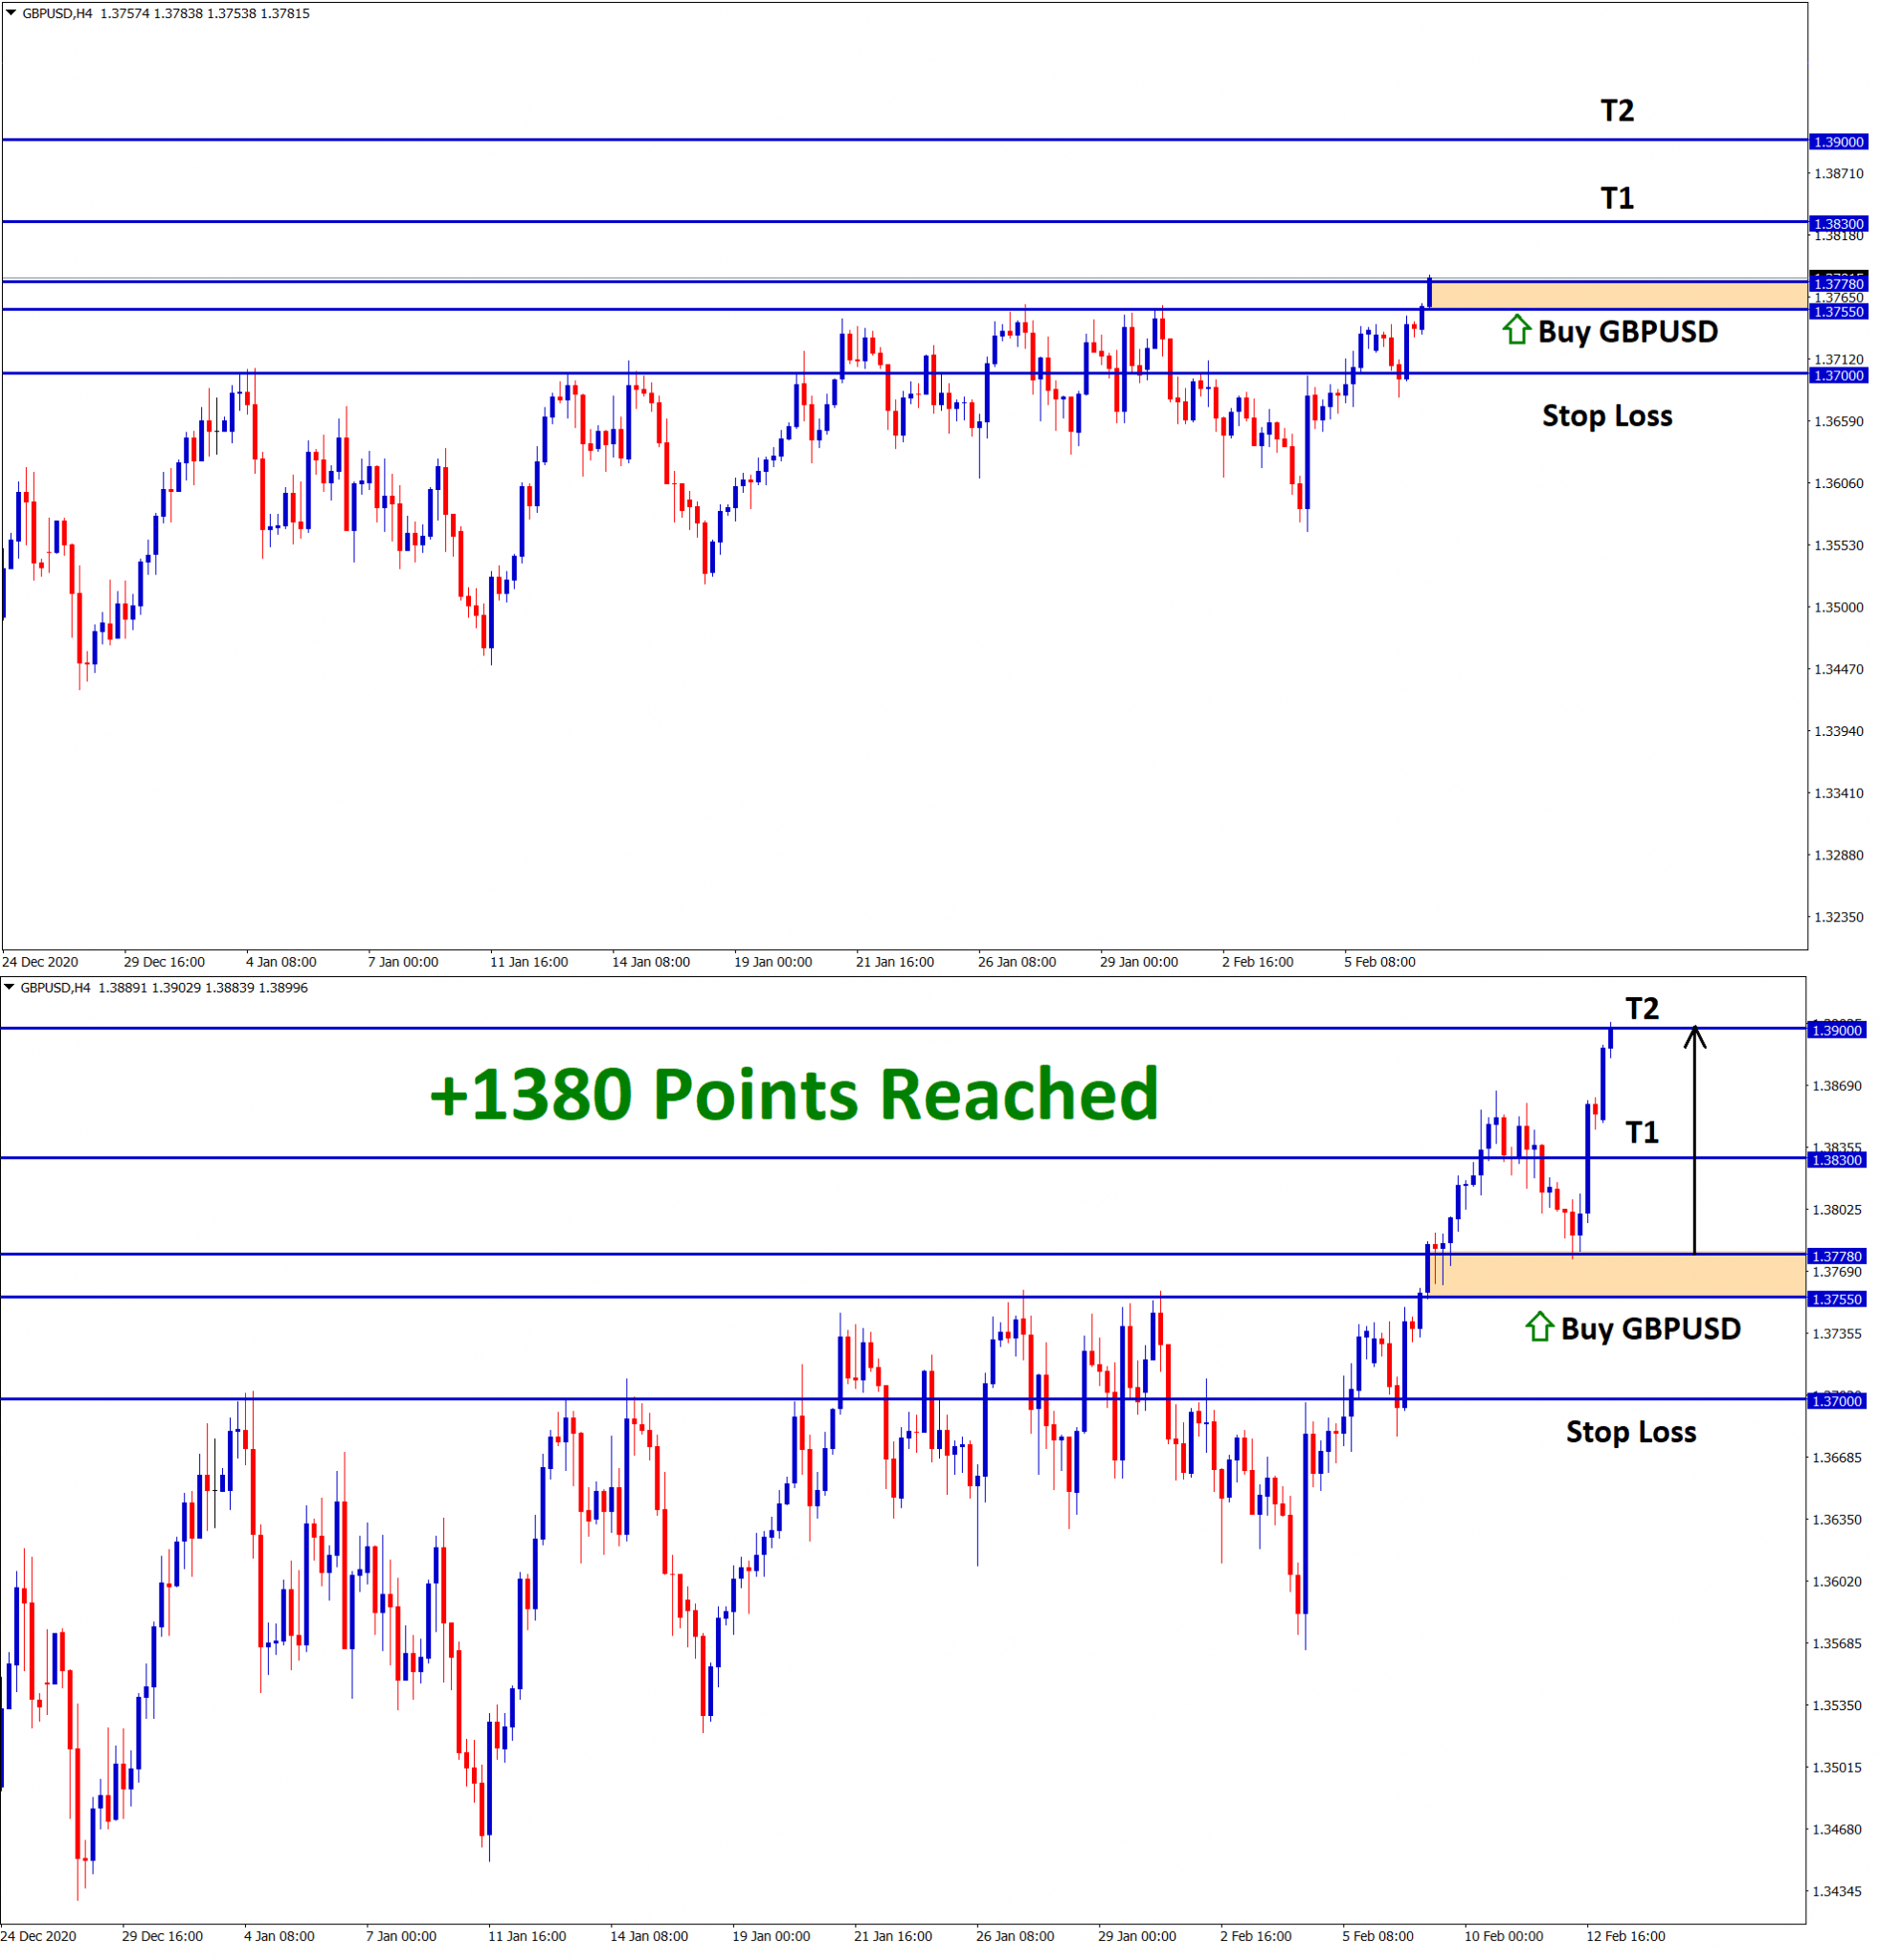 GBPUSD 1380 Points Target 2 reached